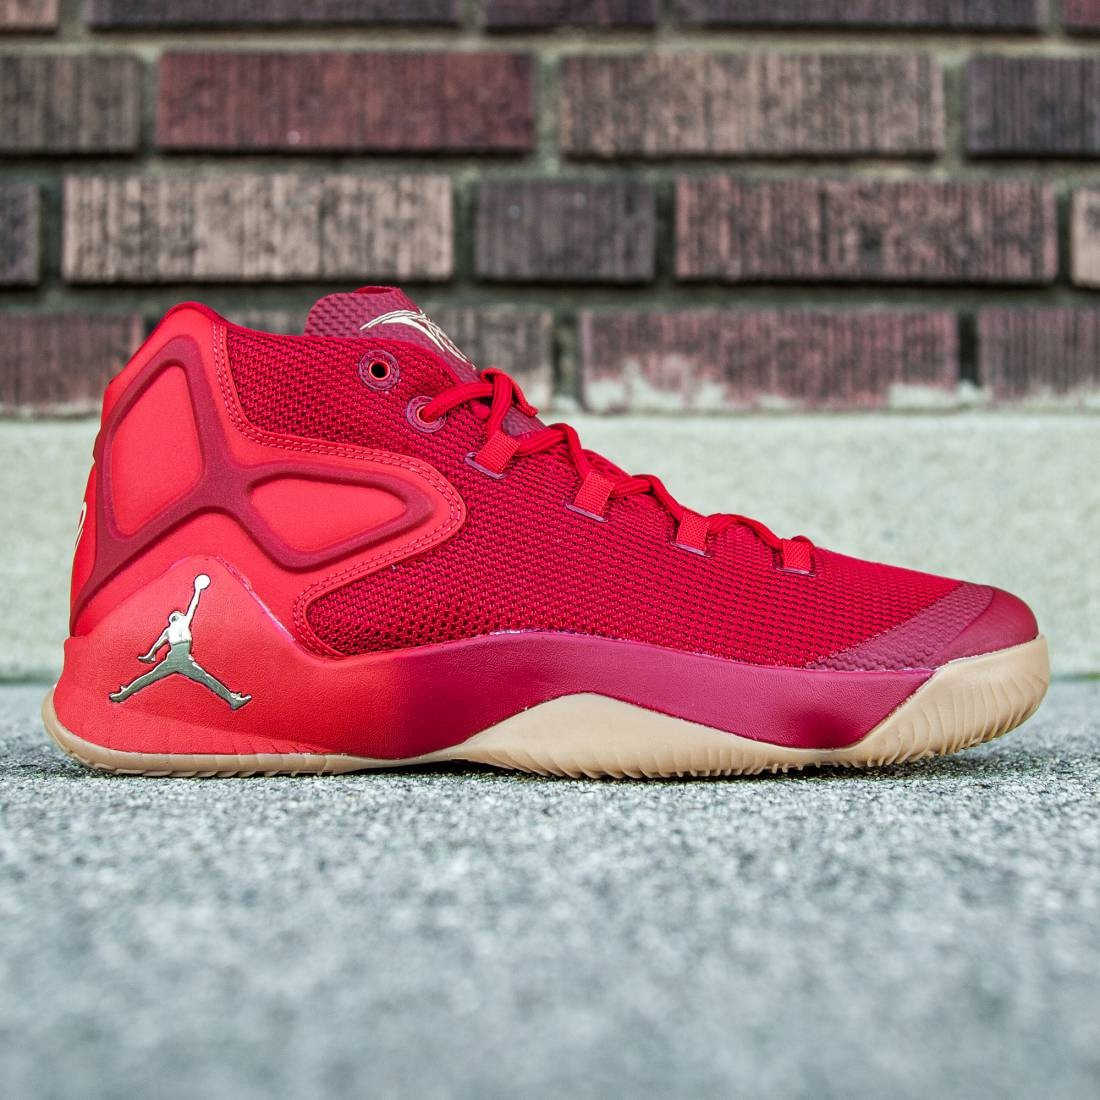 ec7170021746 Jordan Men Melo M12 - Big Apple red university red metallic gold gum light  brown